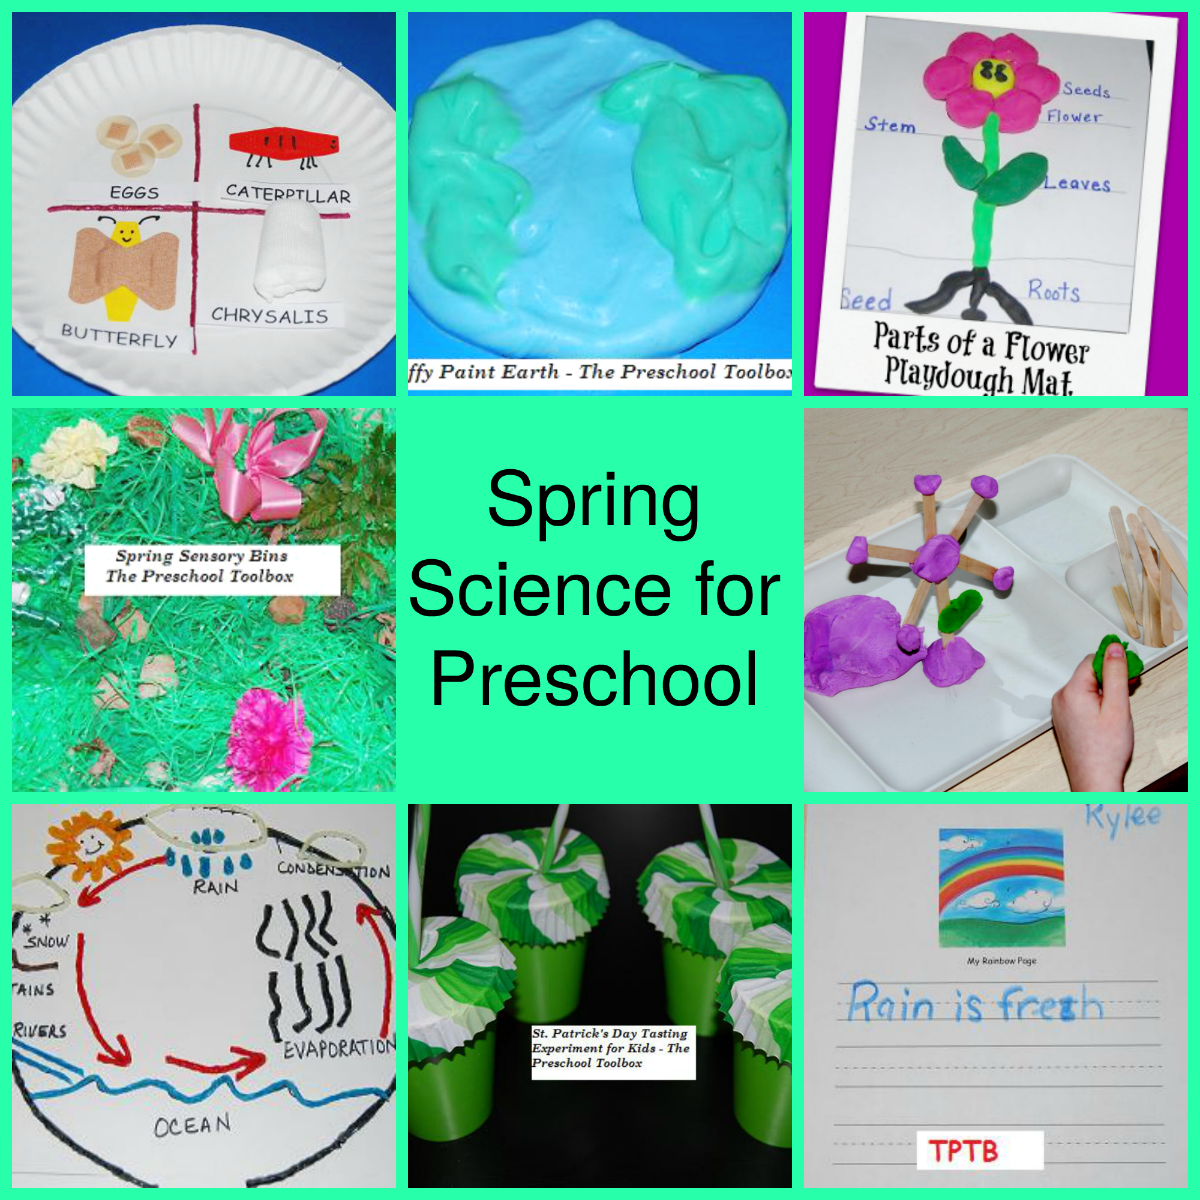 Spring Science Explorations for Preschool